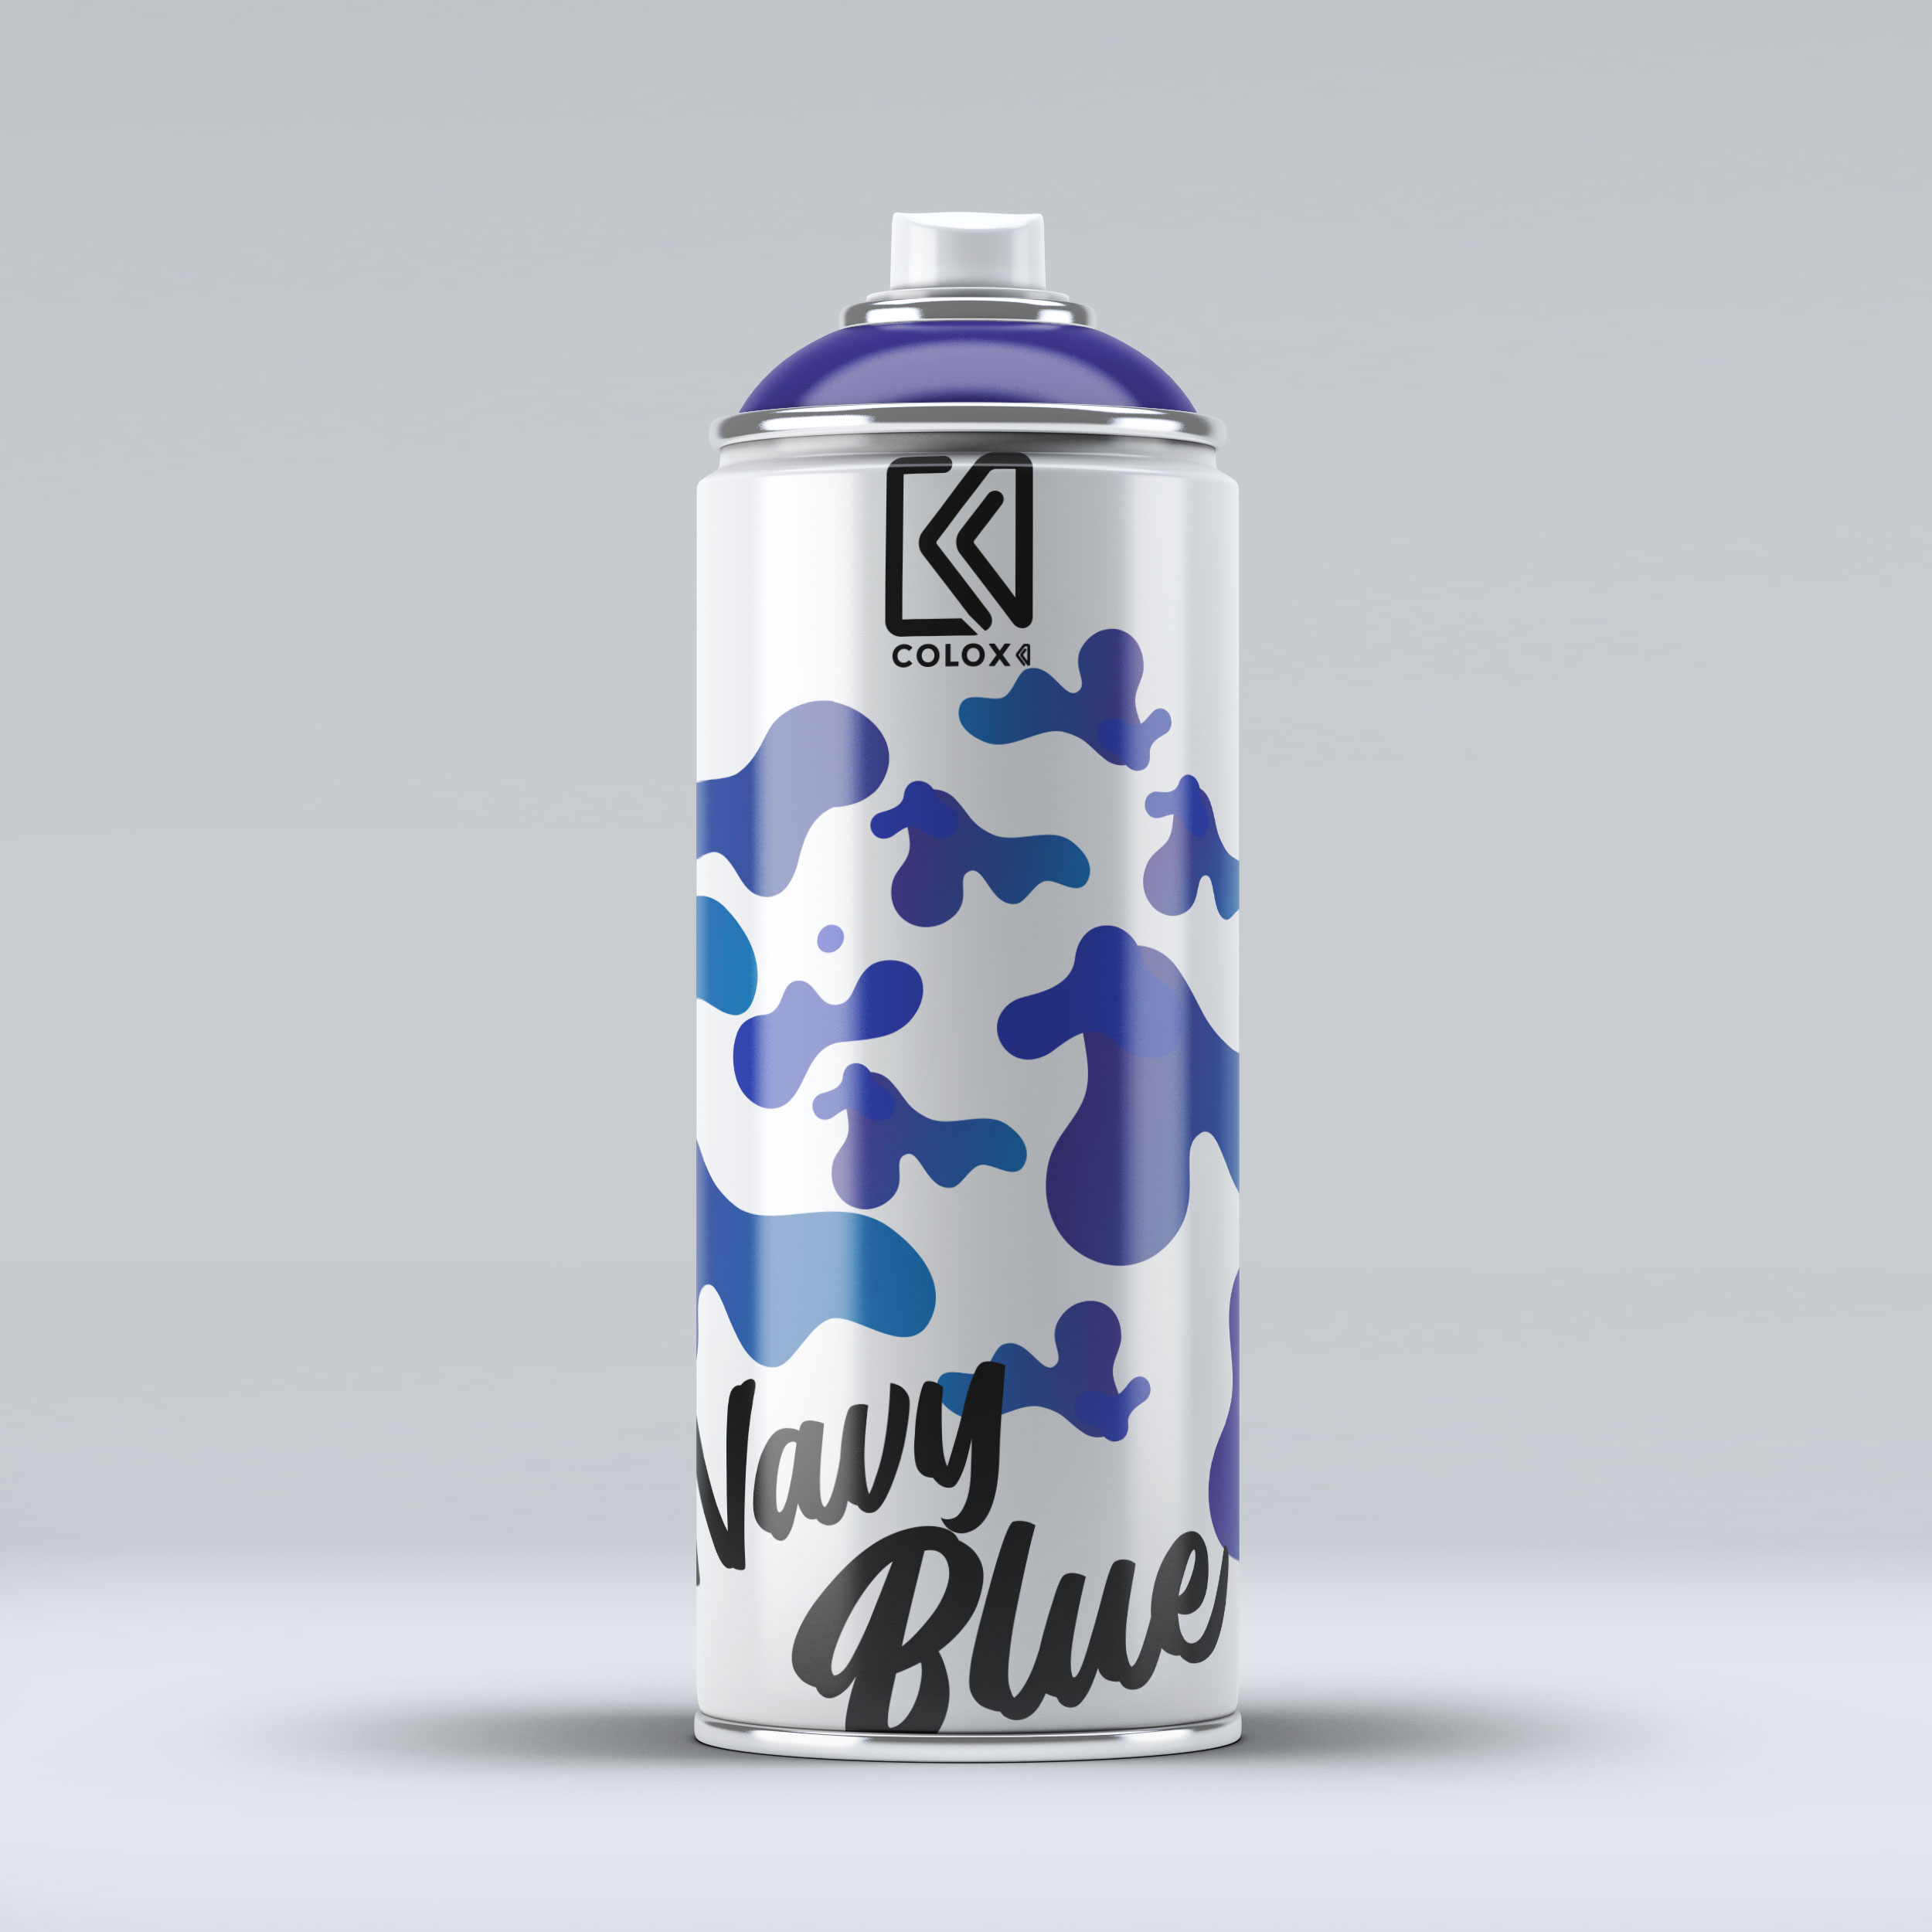 02-Spray-Paint-Mock-Up-v1.jpg